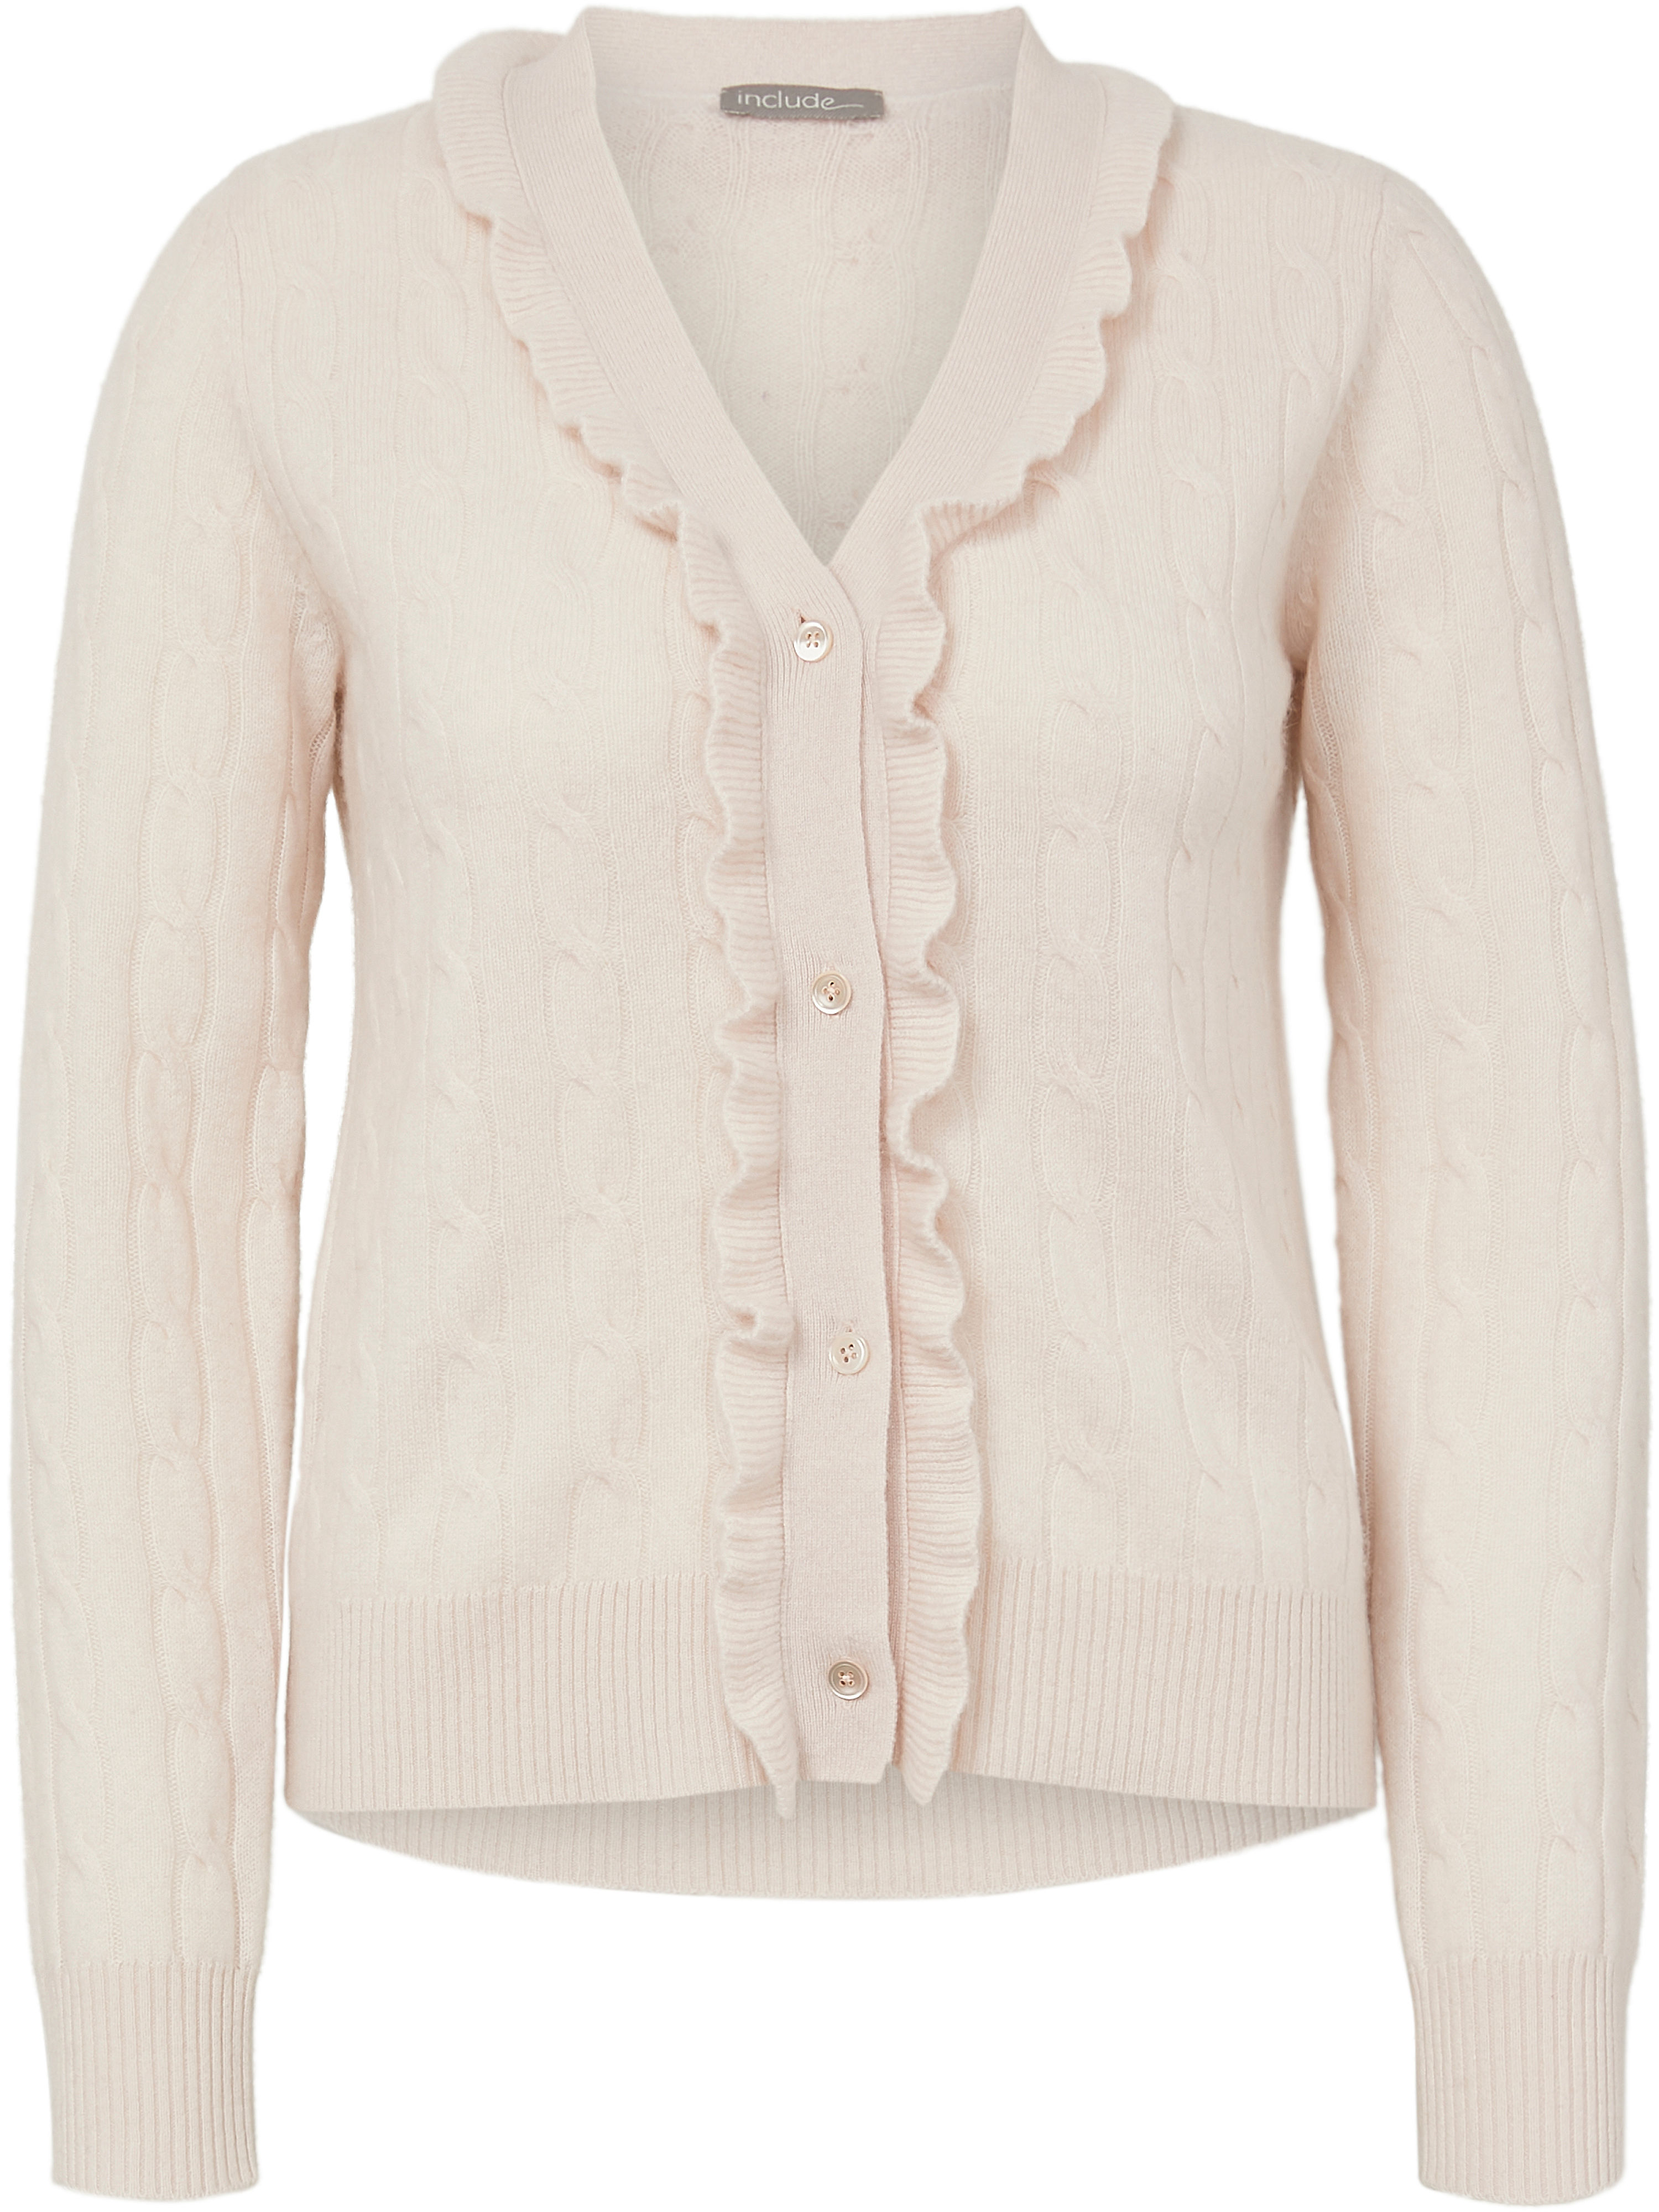 Le gilet 100% cachemire  include rose taille 42